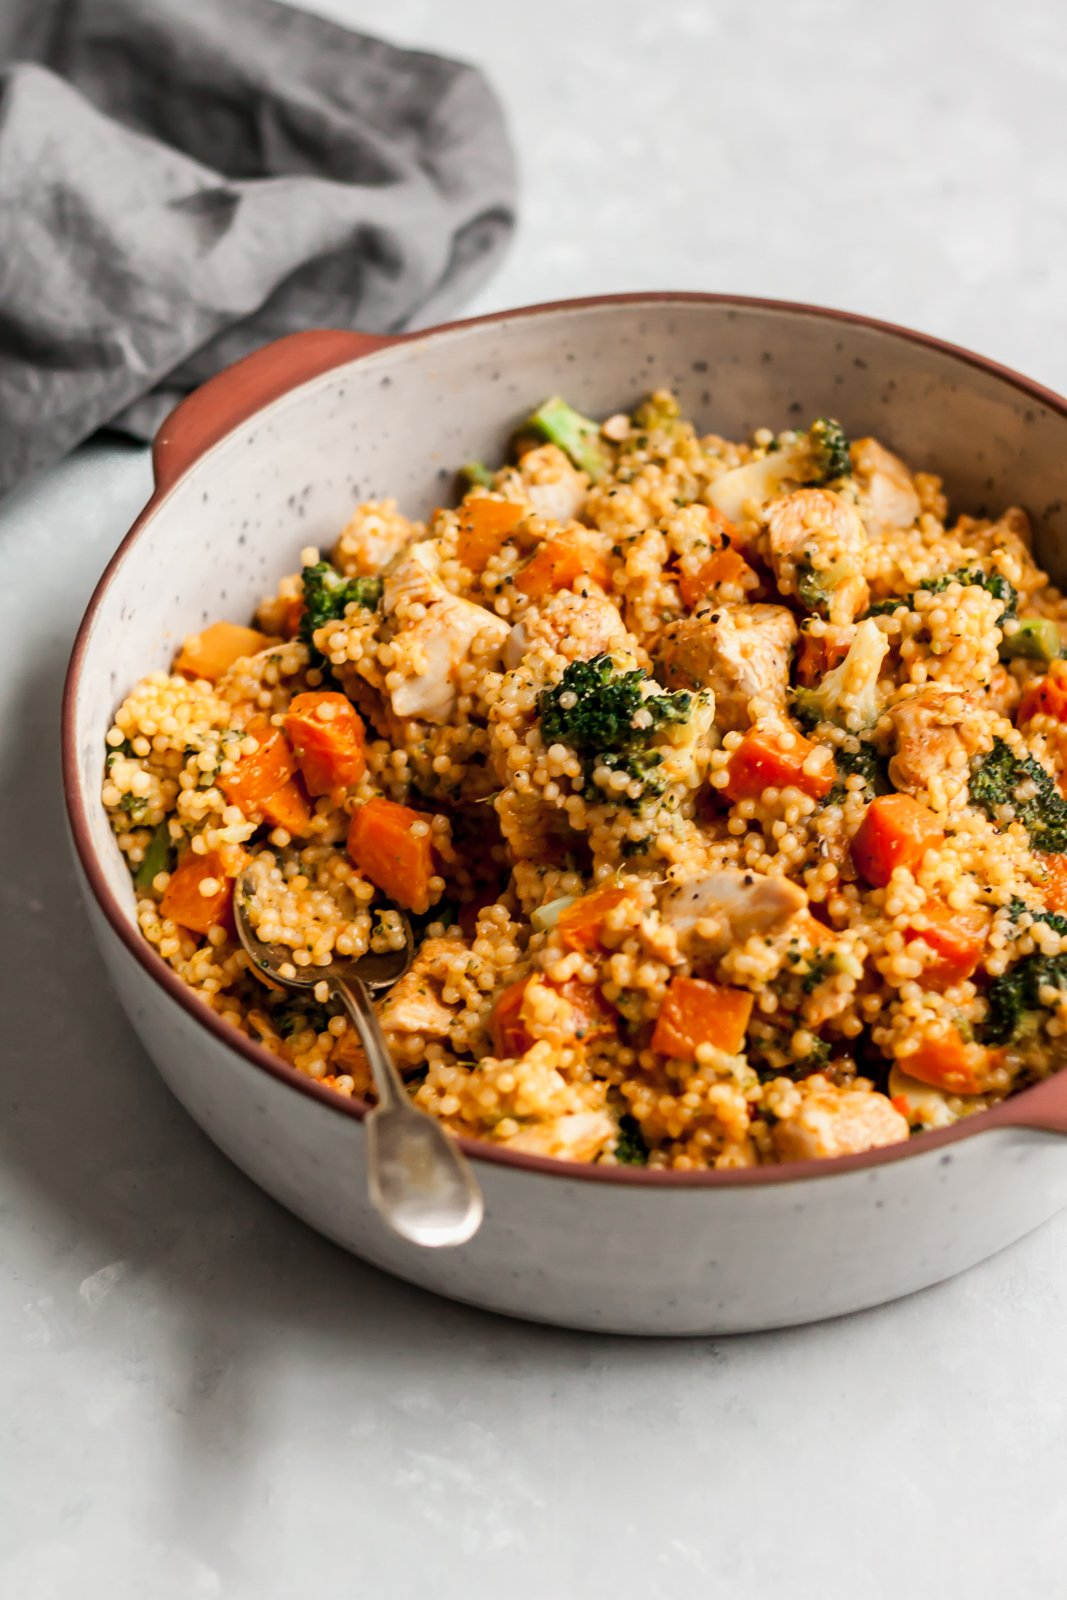 broccoli cheddar chicken couscous in a ceramic bowl with a spoon